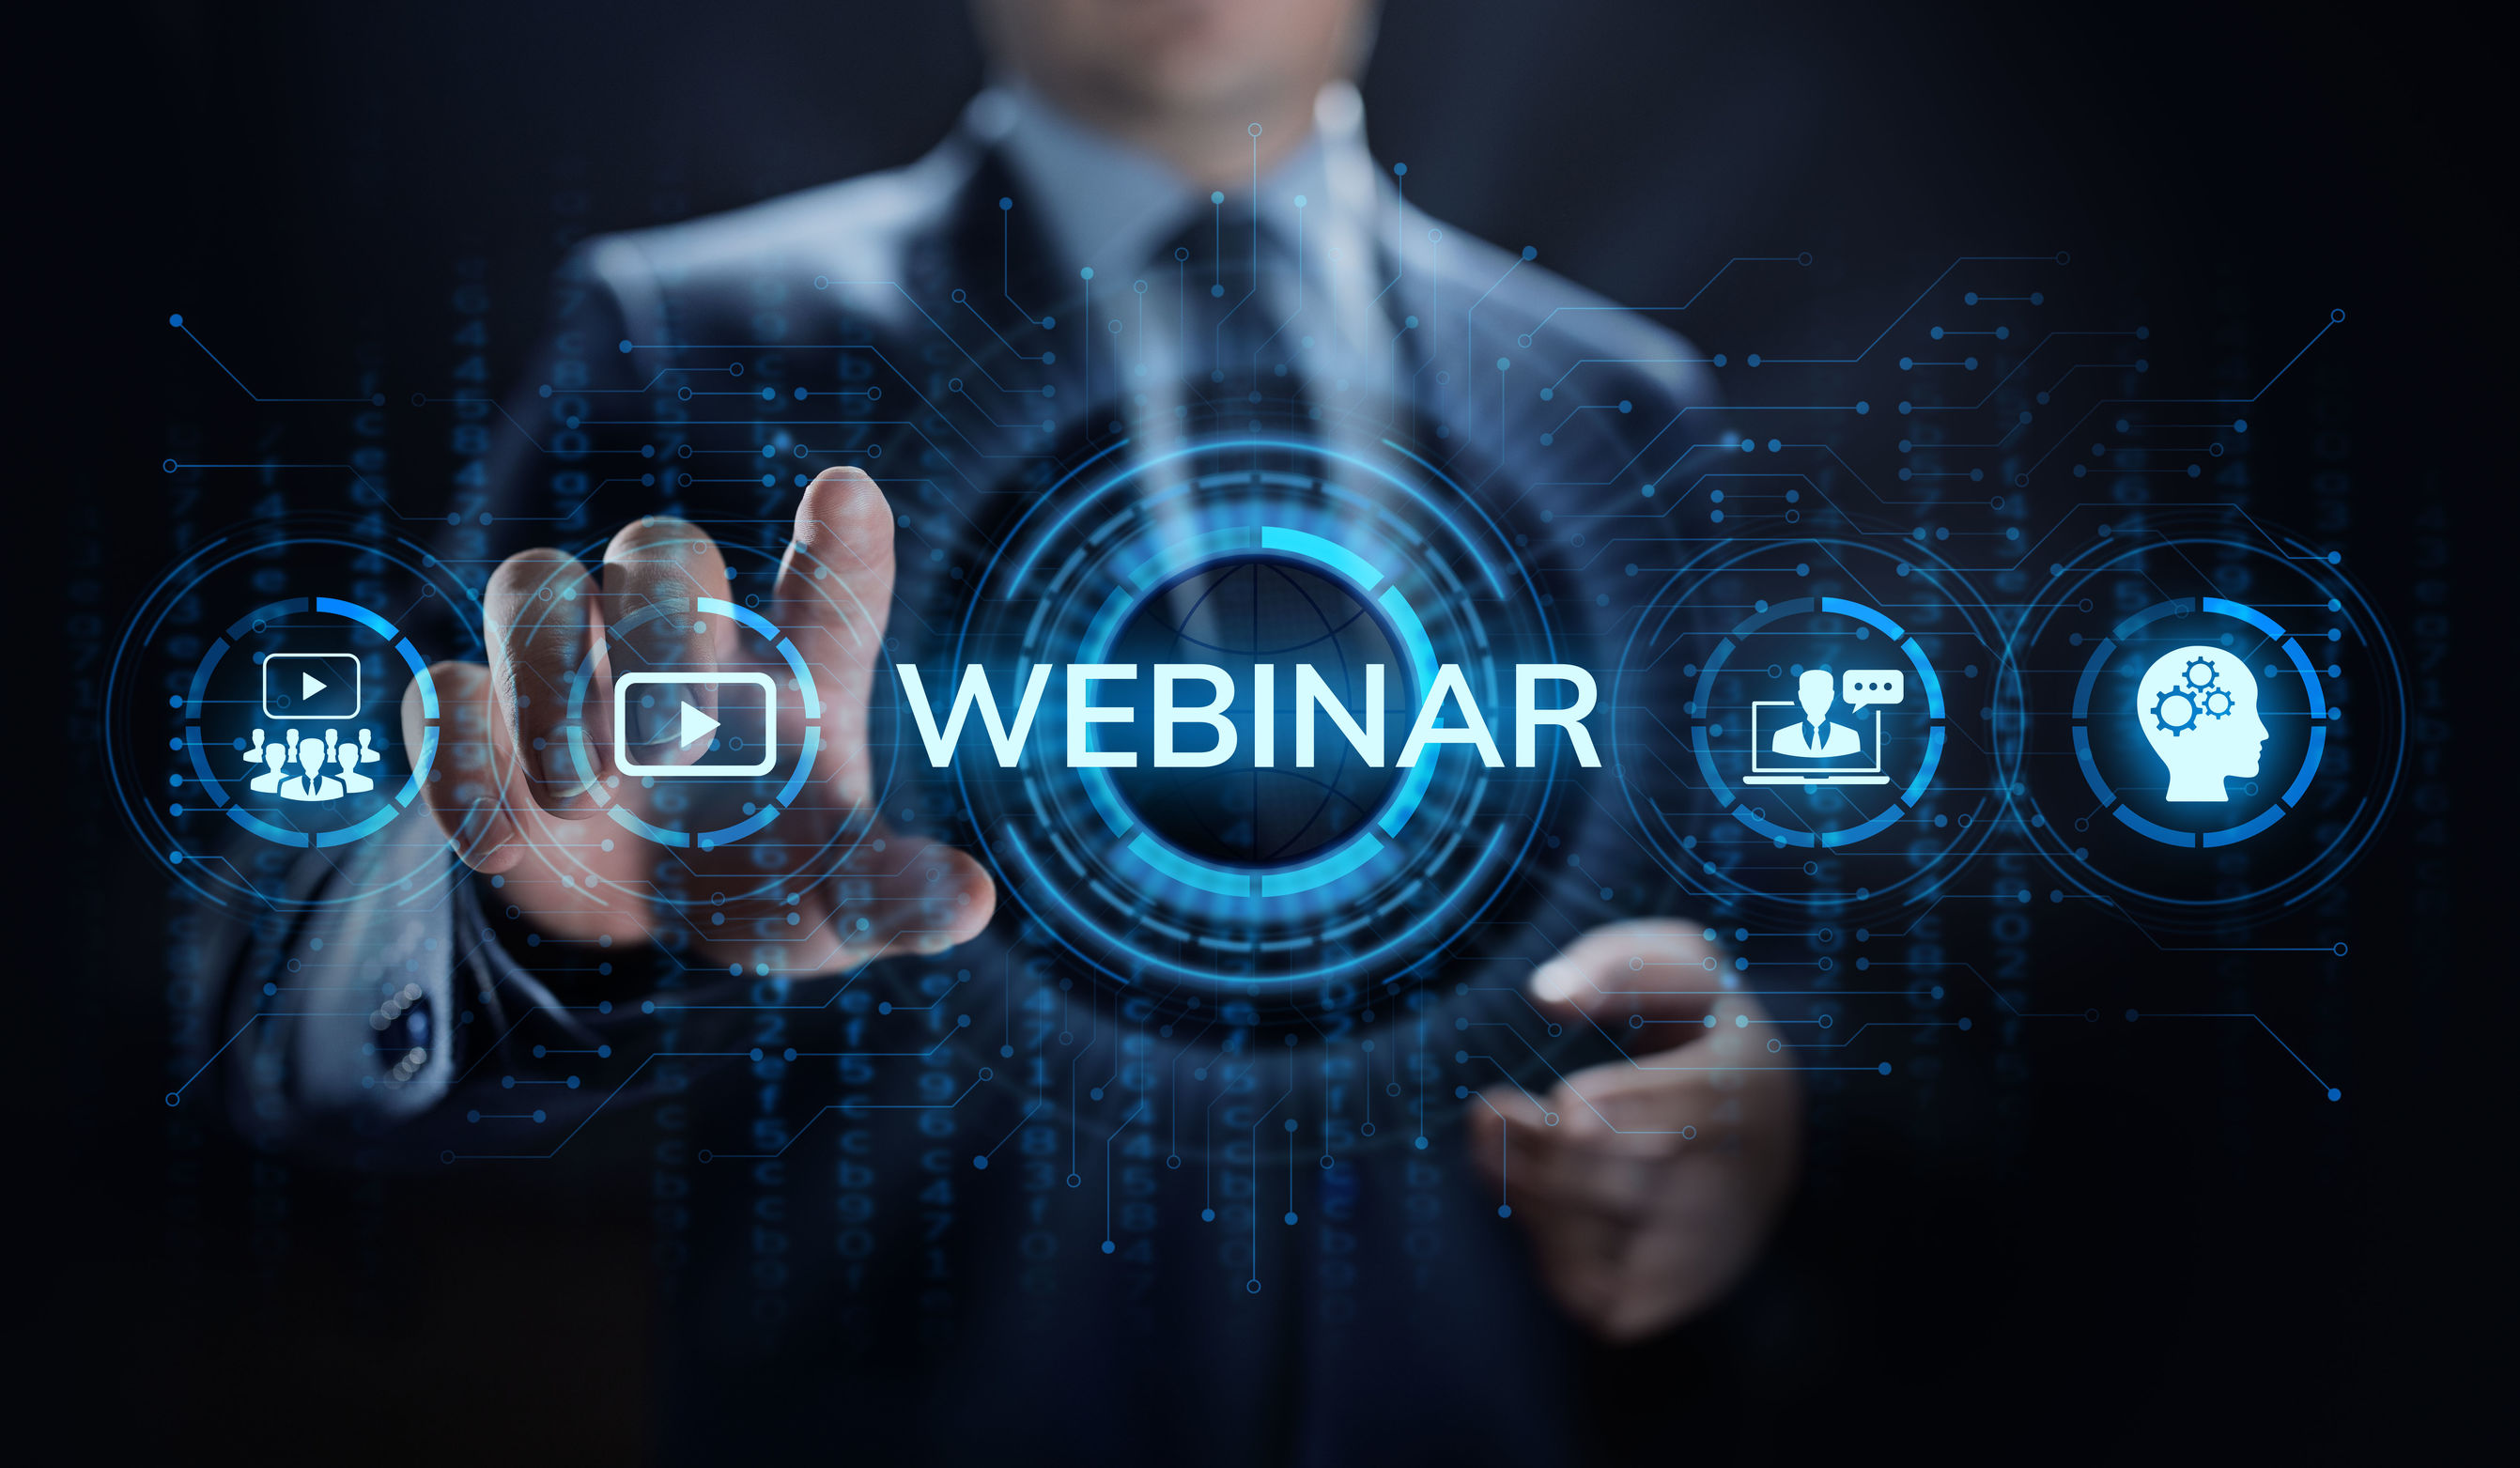 Ring in the New Year with Our January Webinars